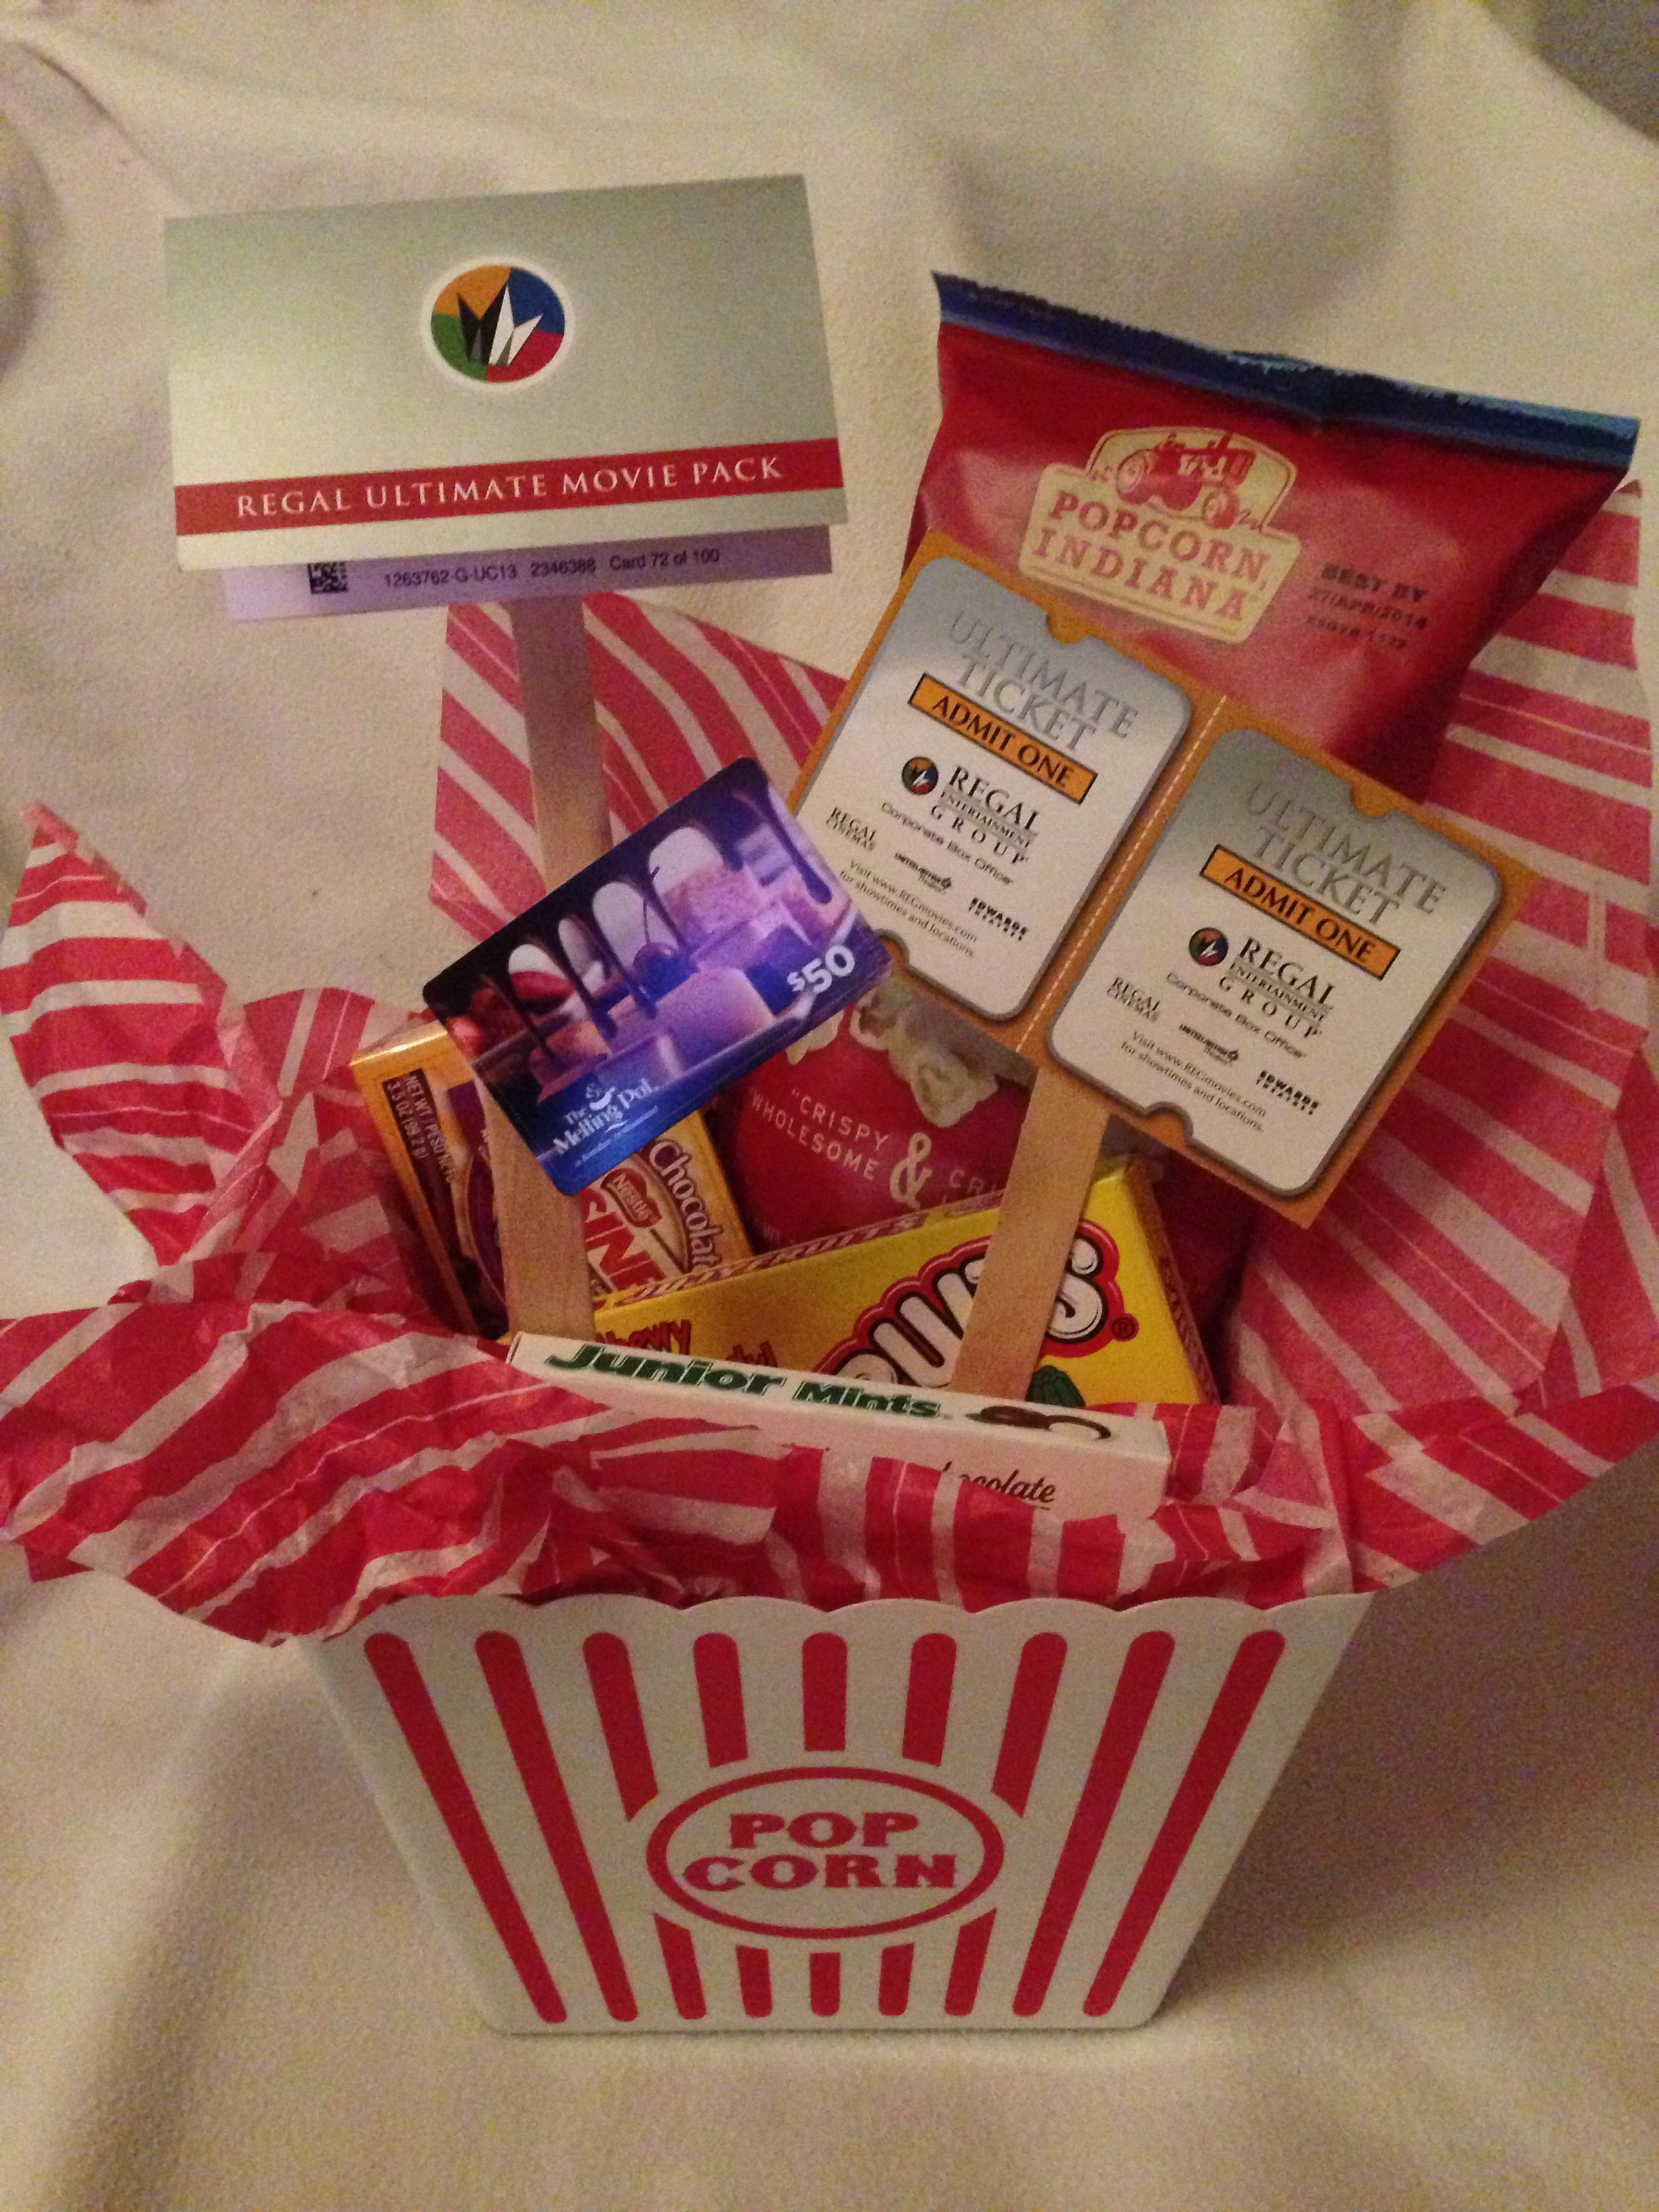 Best ideas about Ideas For A Movie Theater Gift Basket . Save or Pin Dinner & a movie Gift Movie theater snacks bag of Now.